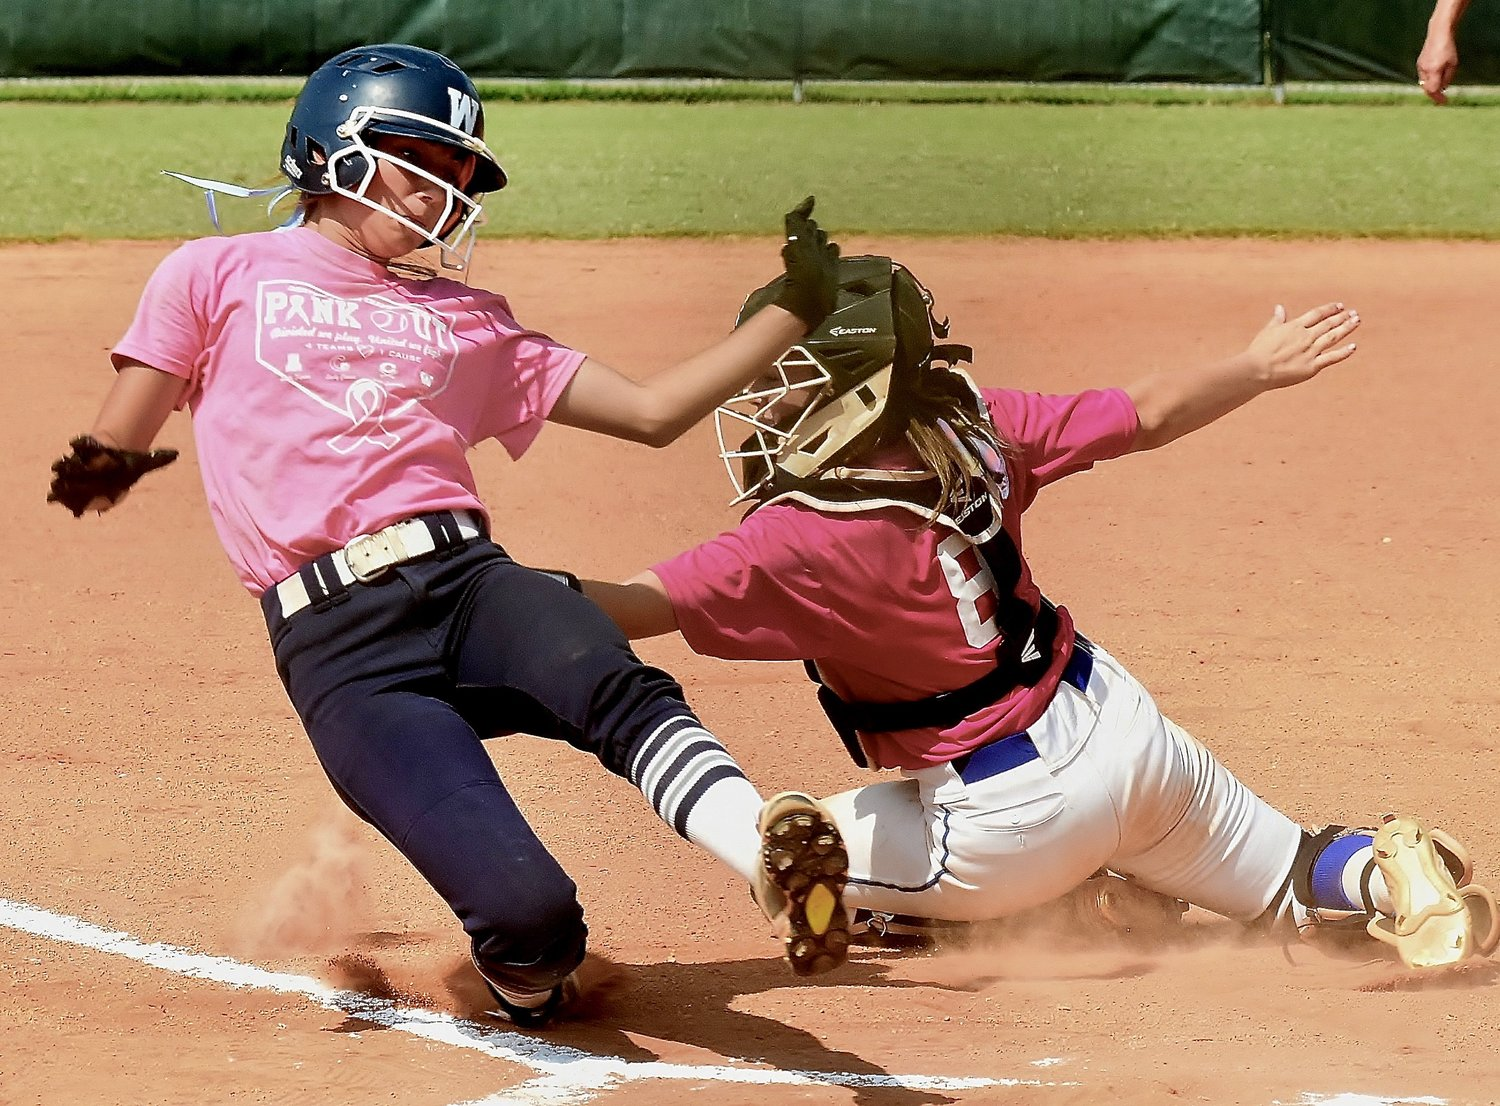 Cass sophomore catcher Saydee Najarro tags out Woodland senior Bella Carnes, as Carnes attempted to score on a flyball by Kendyl Hardin to left fielder Kelly Young in the championship game of the Bartow County tournament.